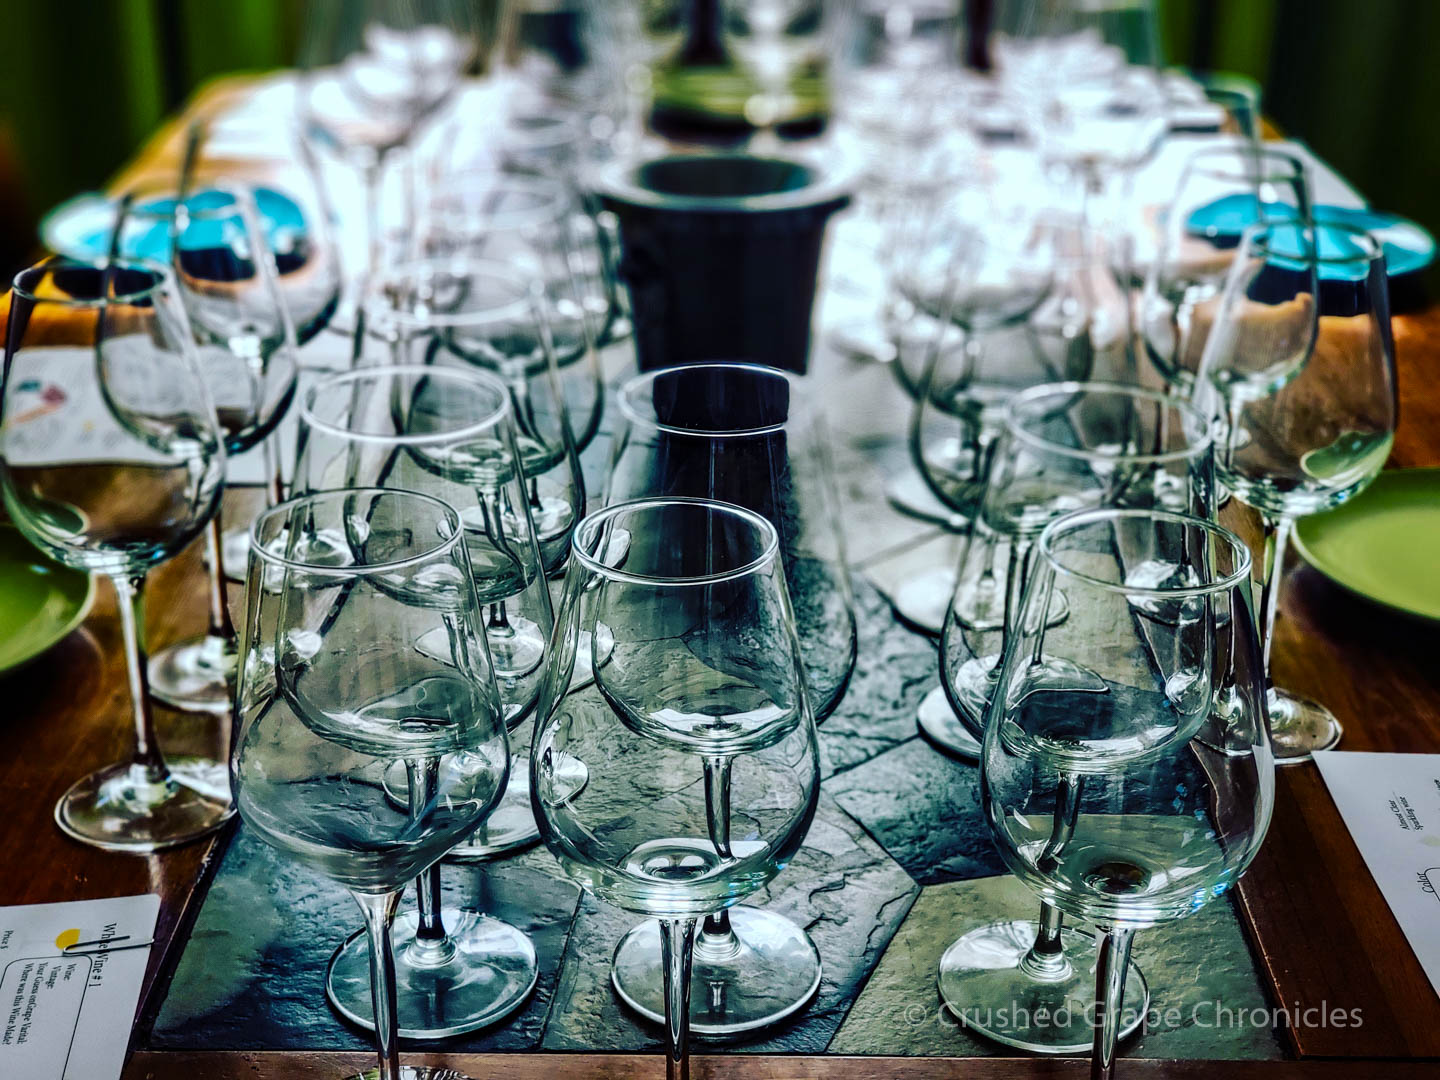 Table set for a blind tasting